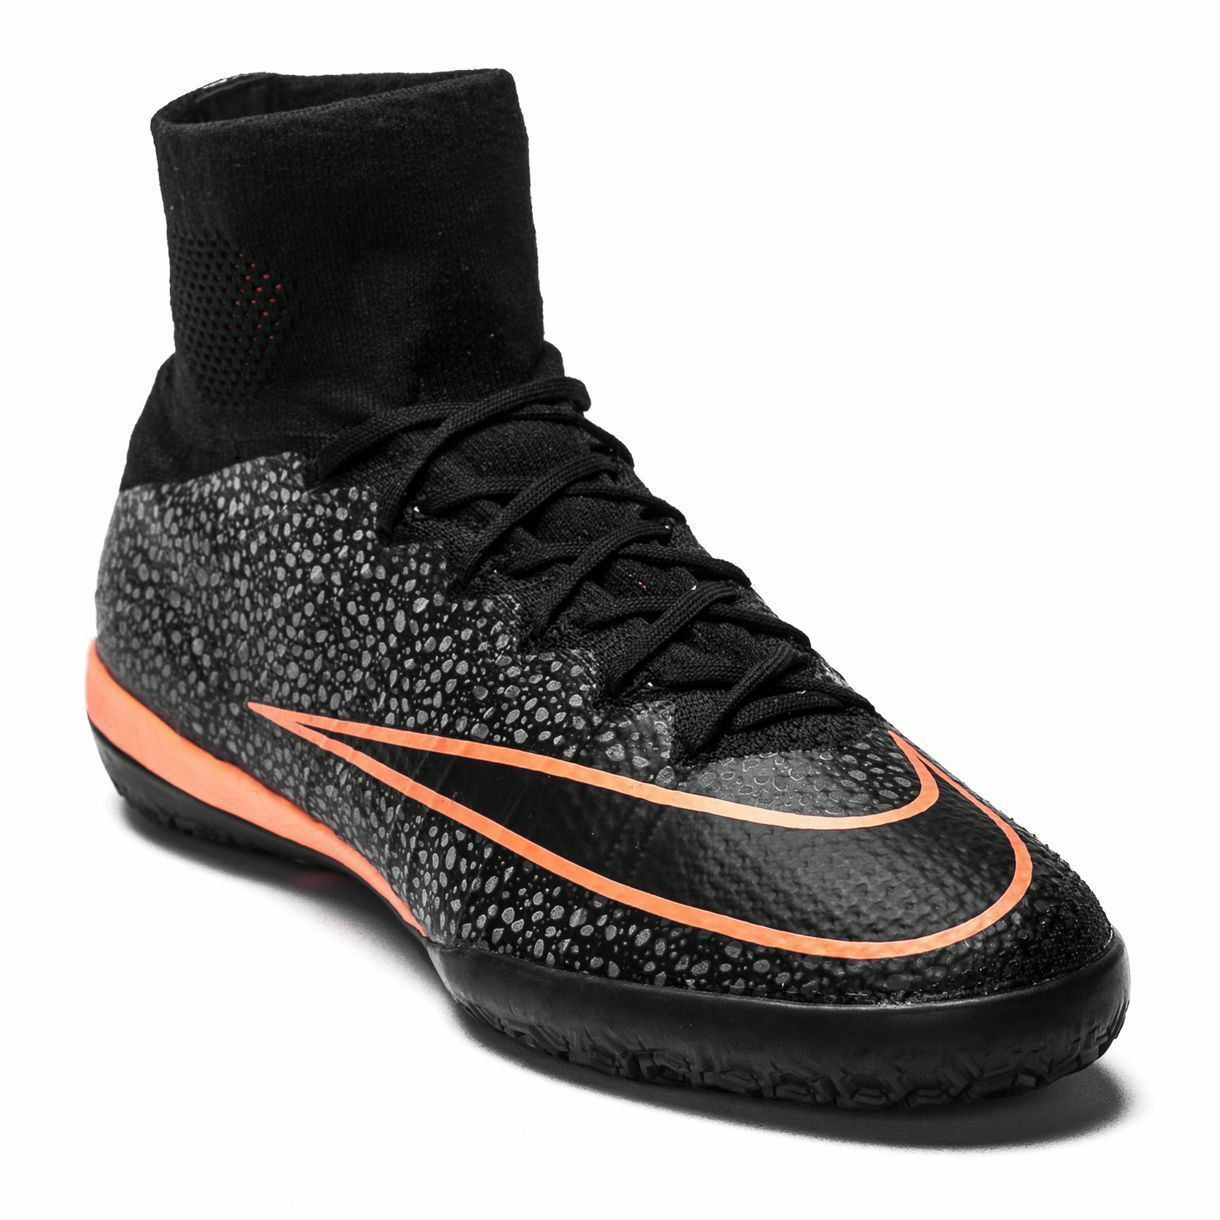 New Nike Hommes Mercurialx Proximo IC Athletic Chaussures  Noir /Mango 718774-008